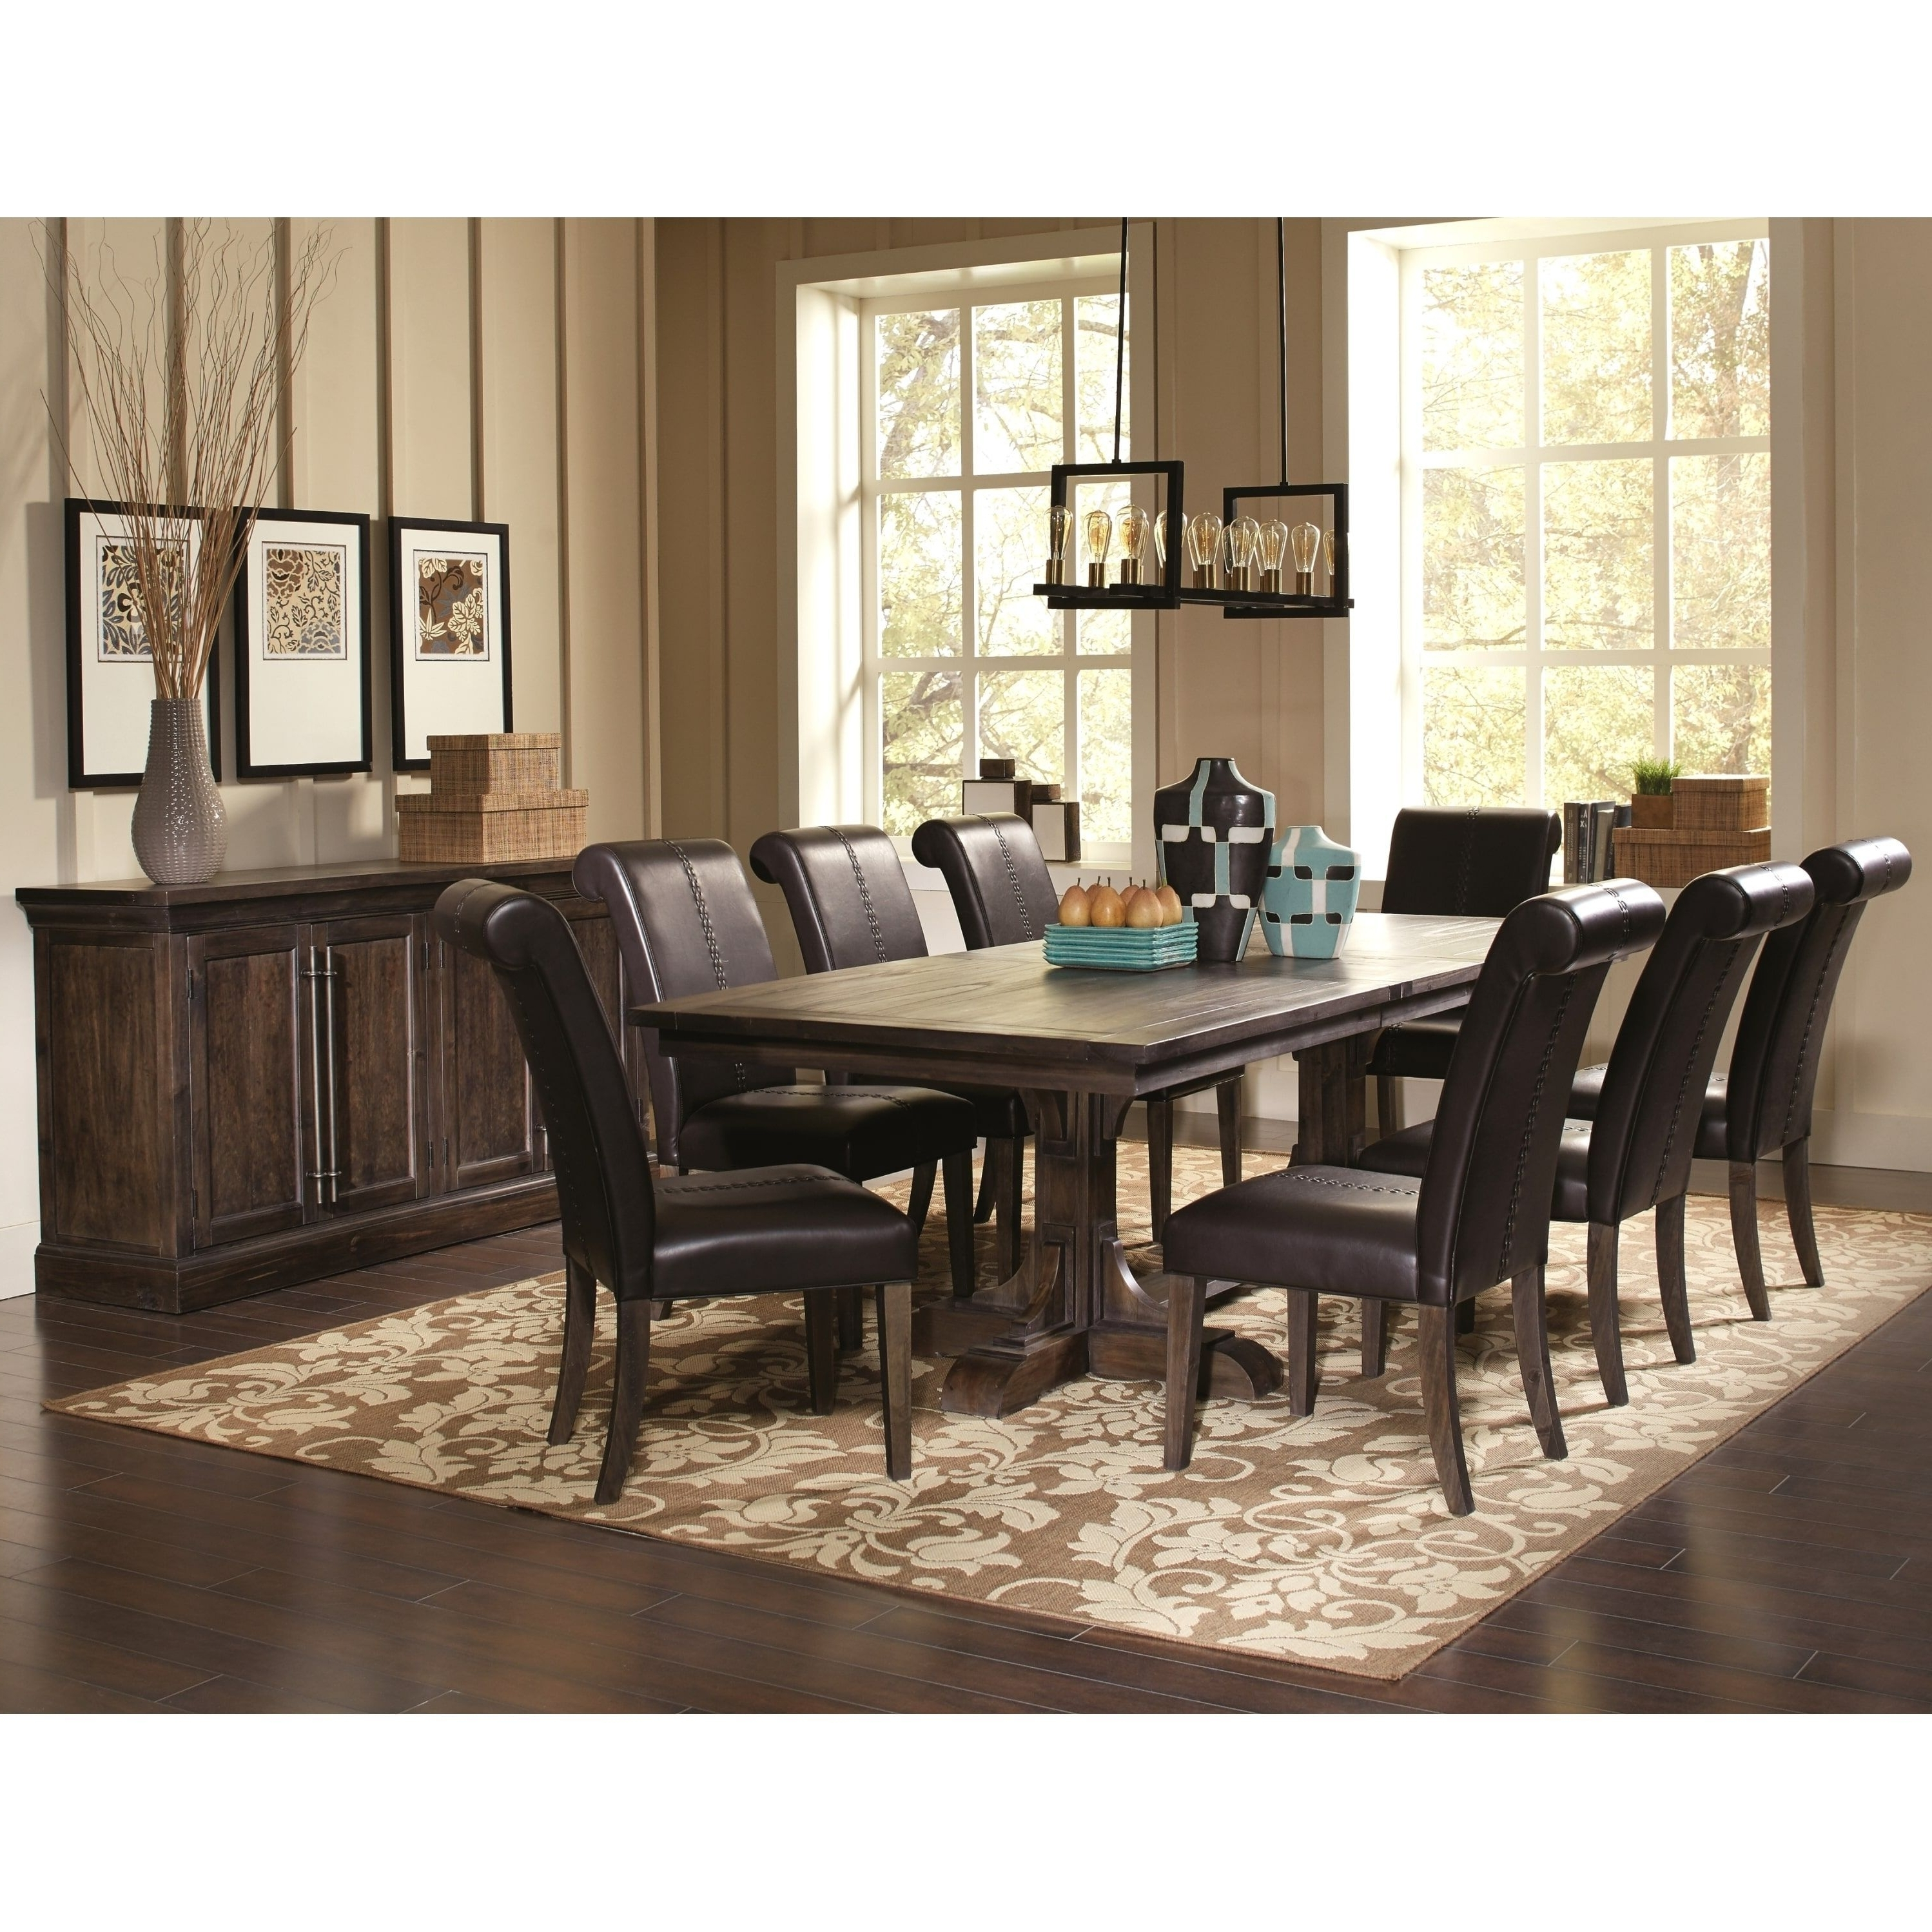 French Baroque Designed Dining Set With Storage Buffet Server (1 Regarding Favorite 8 Chairs Dining Tables (View 19 of 25)